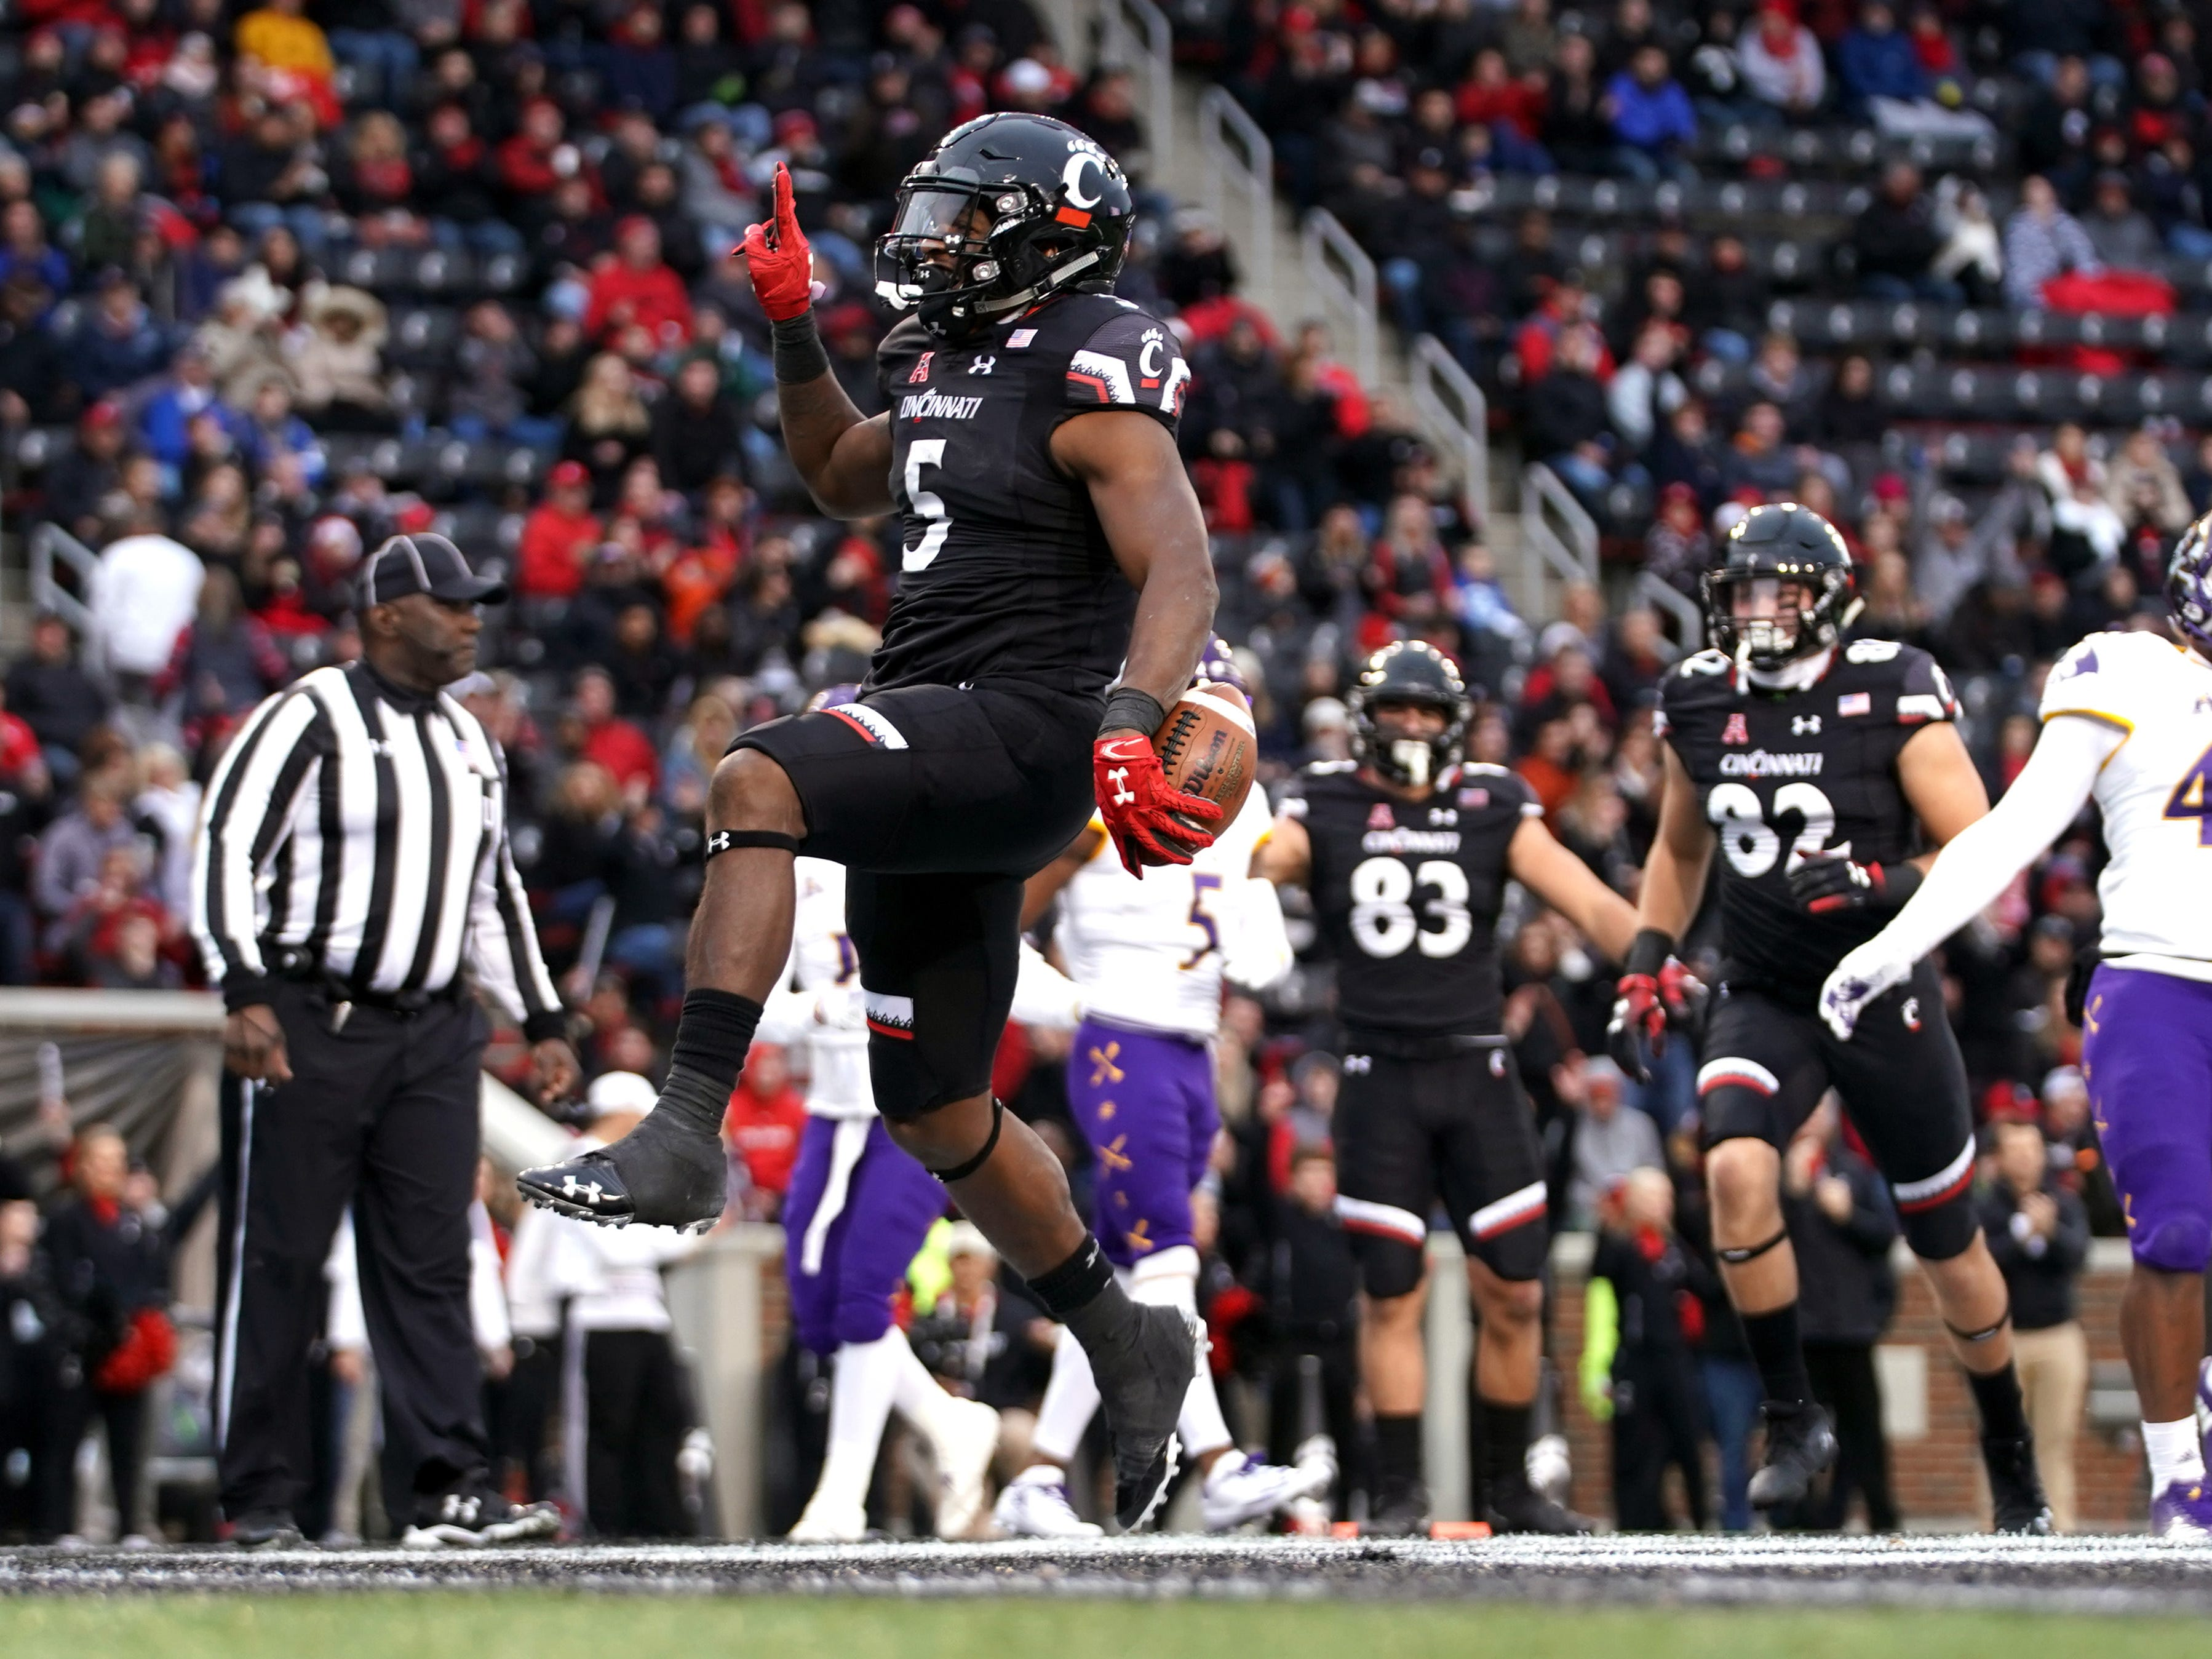 Cincinnati running back Tavion Thomas celebrates after scoring a touchdown against East Carolina.